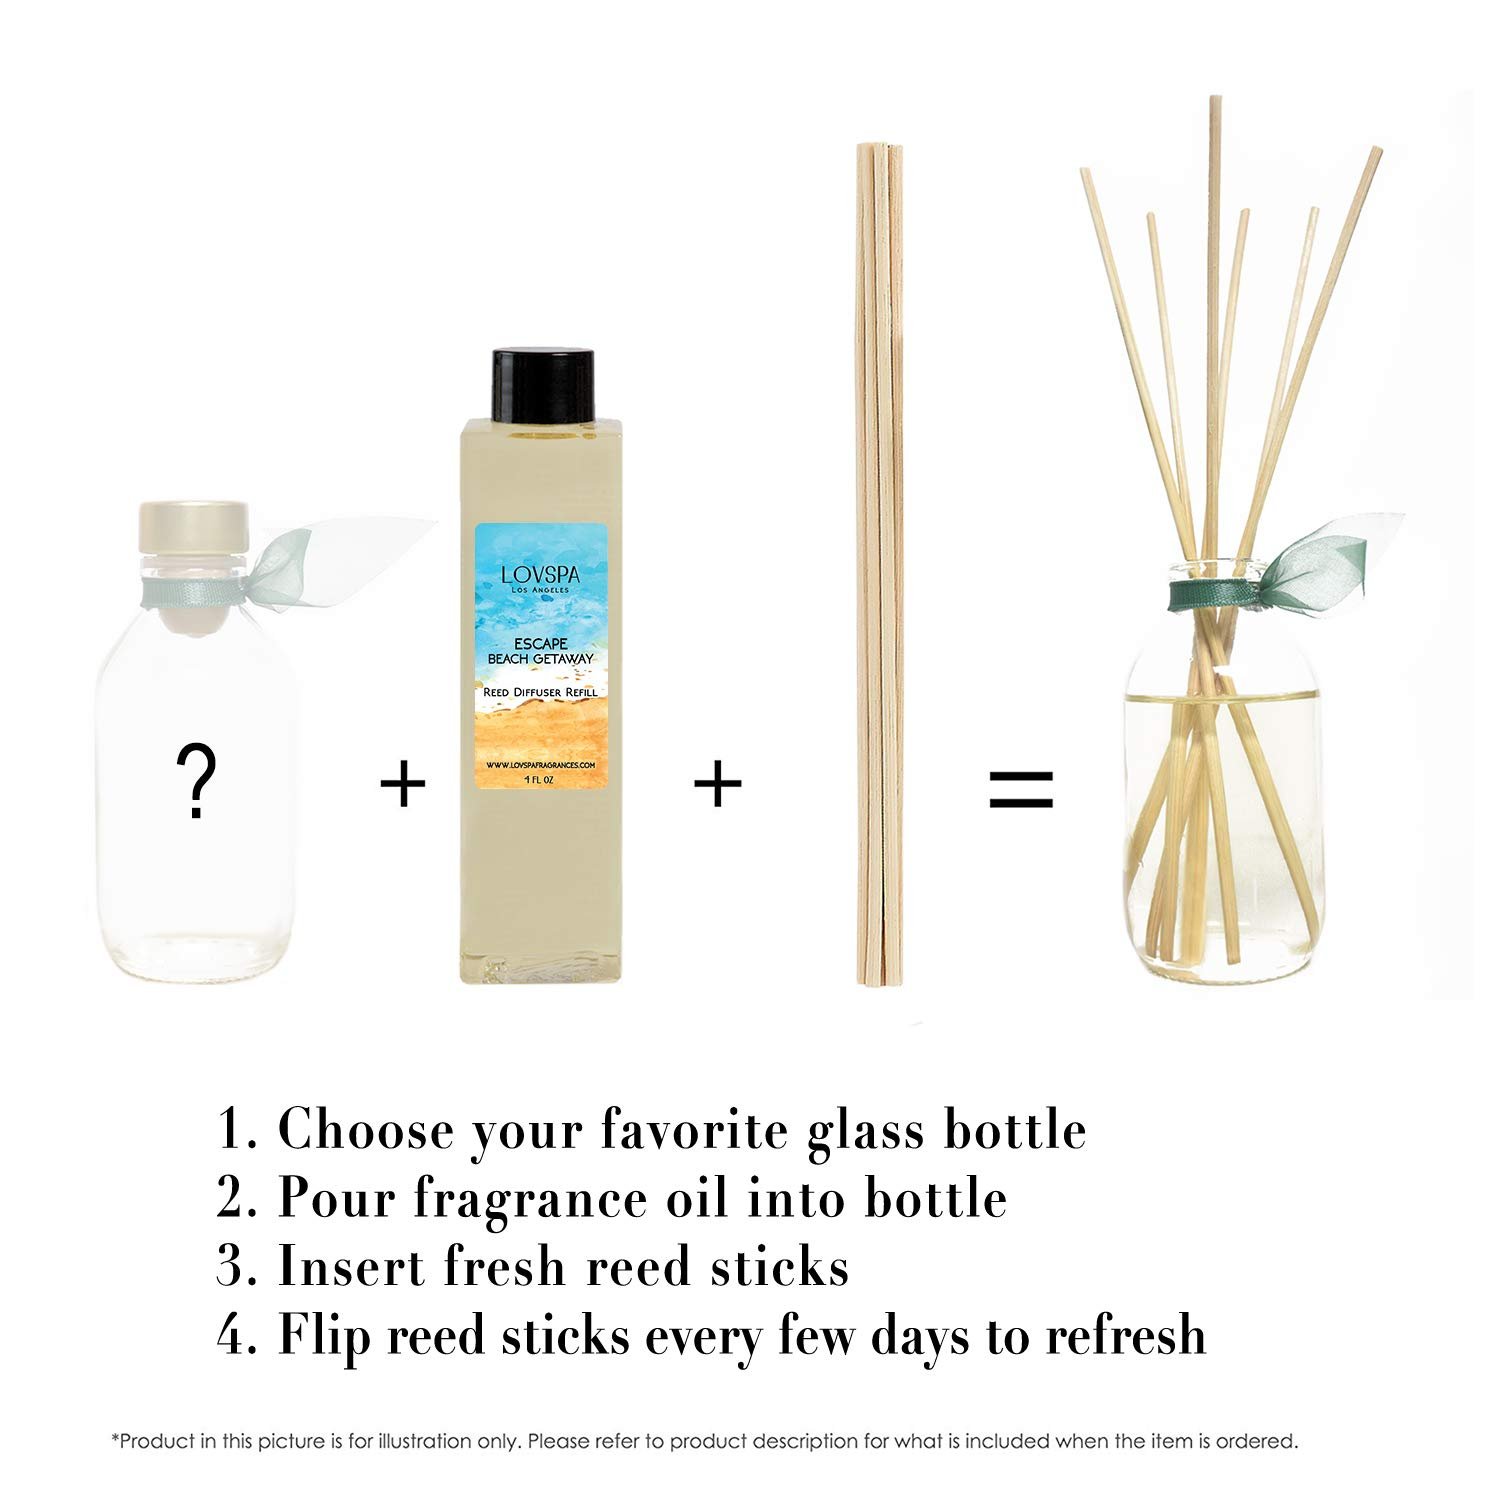 LOVSPA Escape Beach Getaway Reed Diffuser Oil Refill with Replacement Reed Sticks | Citrus Marine Fragrance - Ocean Scented Oil & Reeds | 4 oz | Made in The USA by LOVSPA (Image #2)